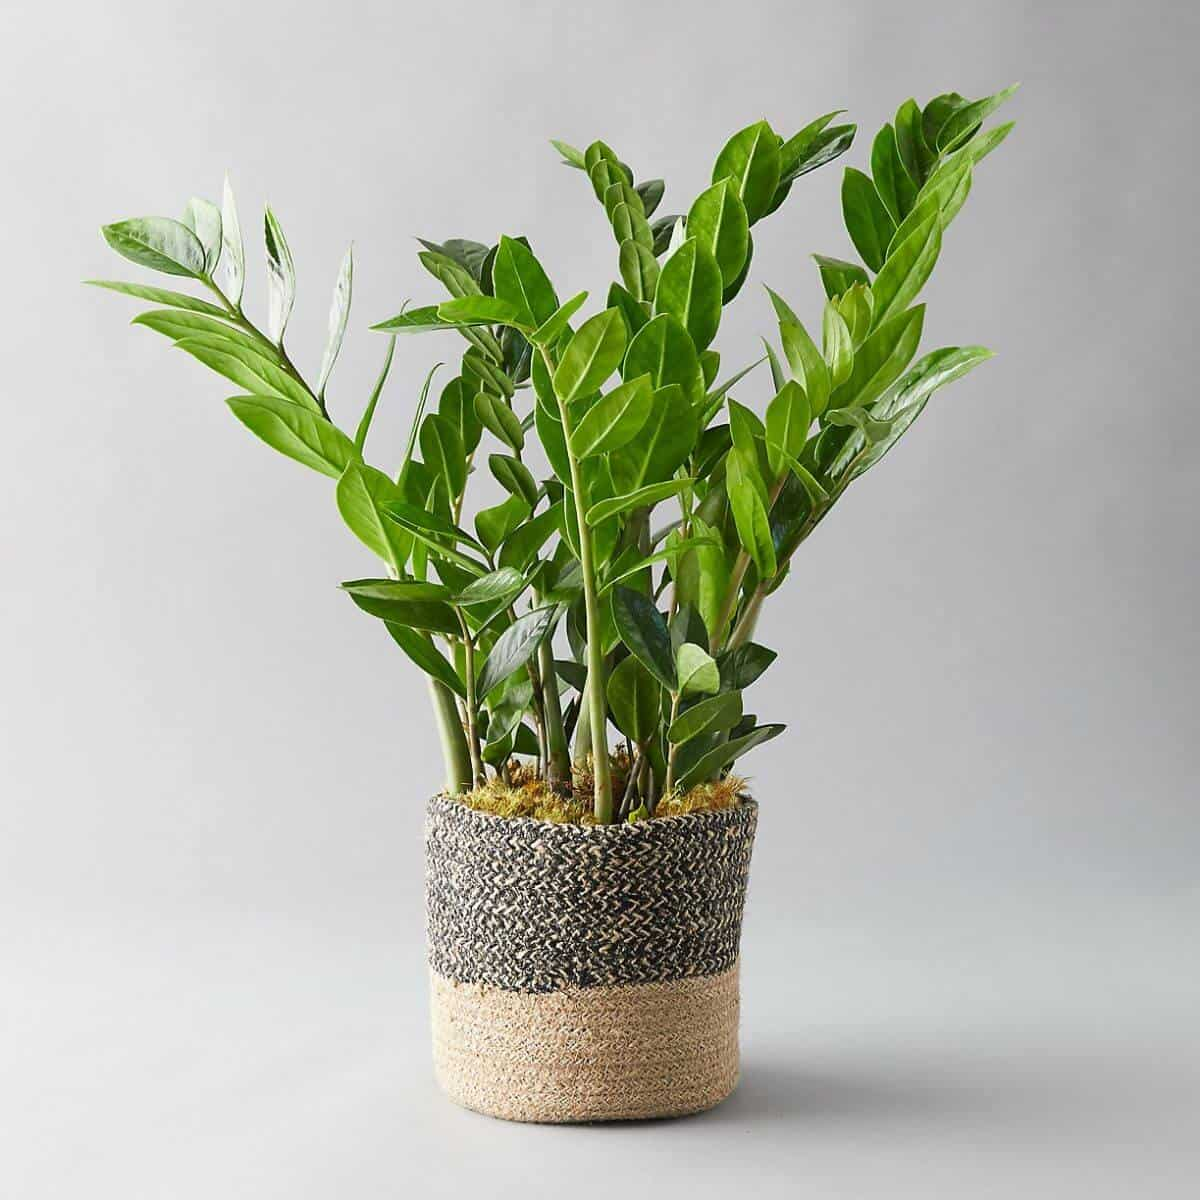 ZZ plant in a woven holder.